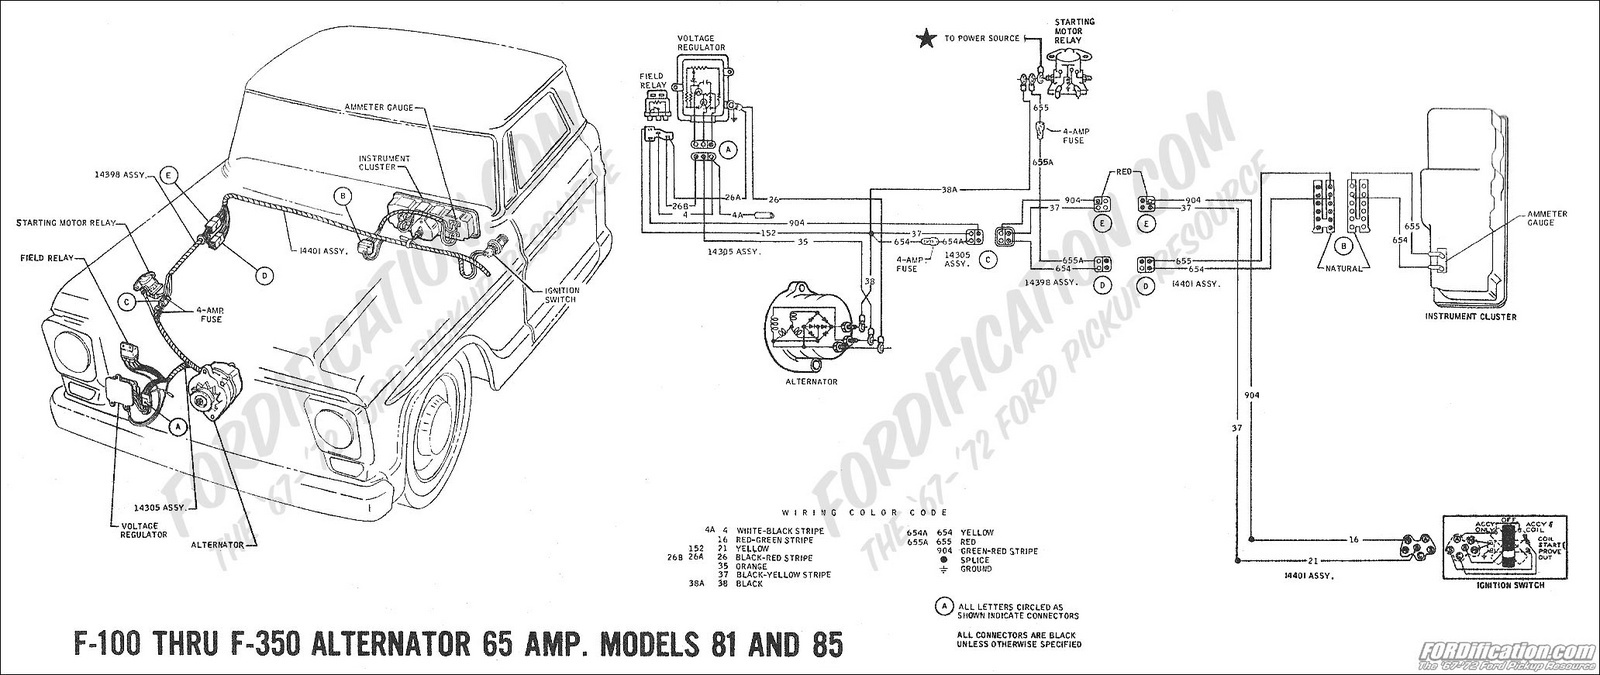 1972 Ford Truck Alternator Wiring Diagram 302 Engine Wireless Network Attached Storage Diagram Bege Wiring Diagram